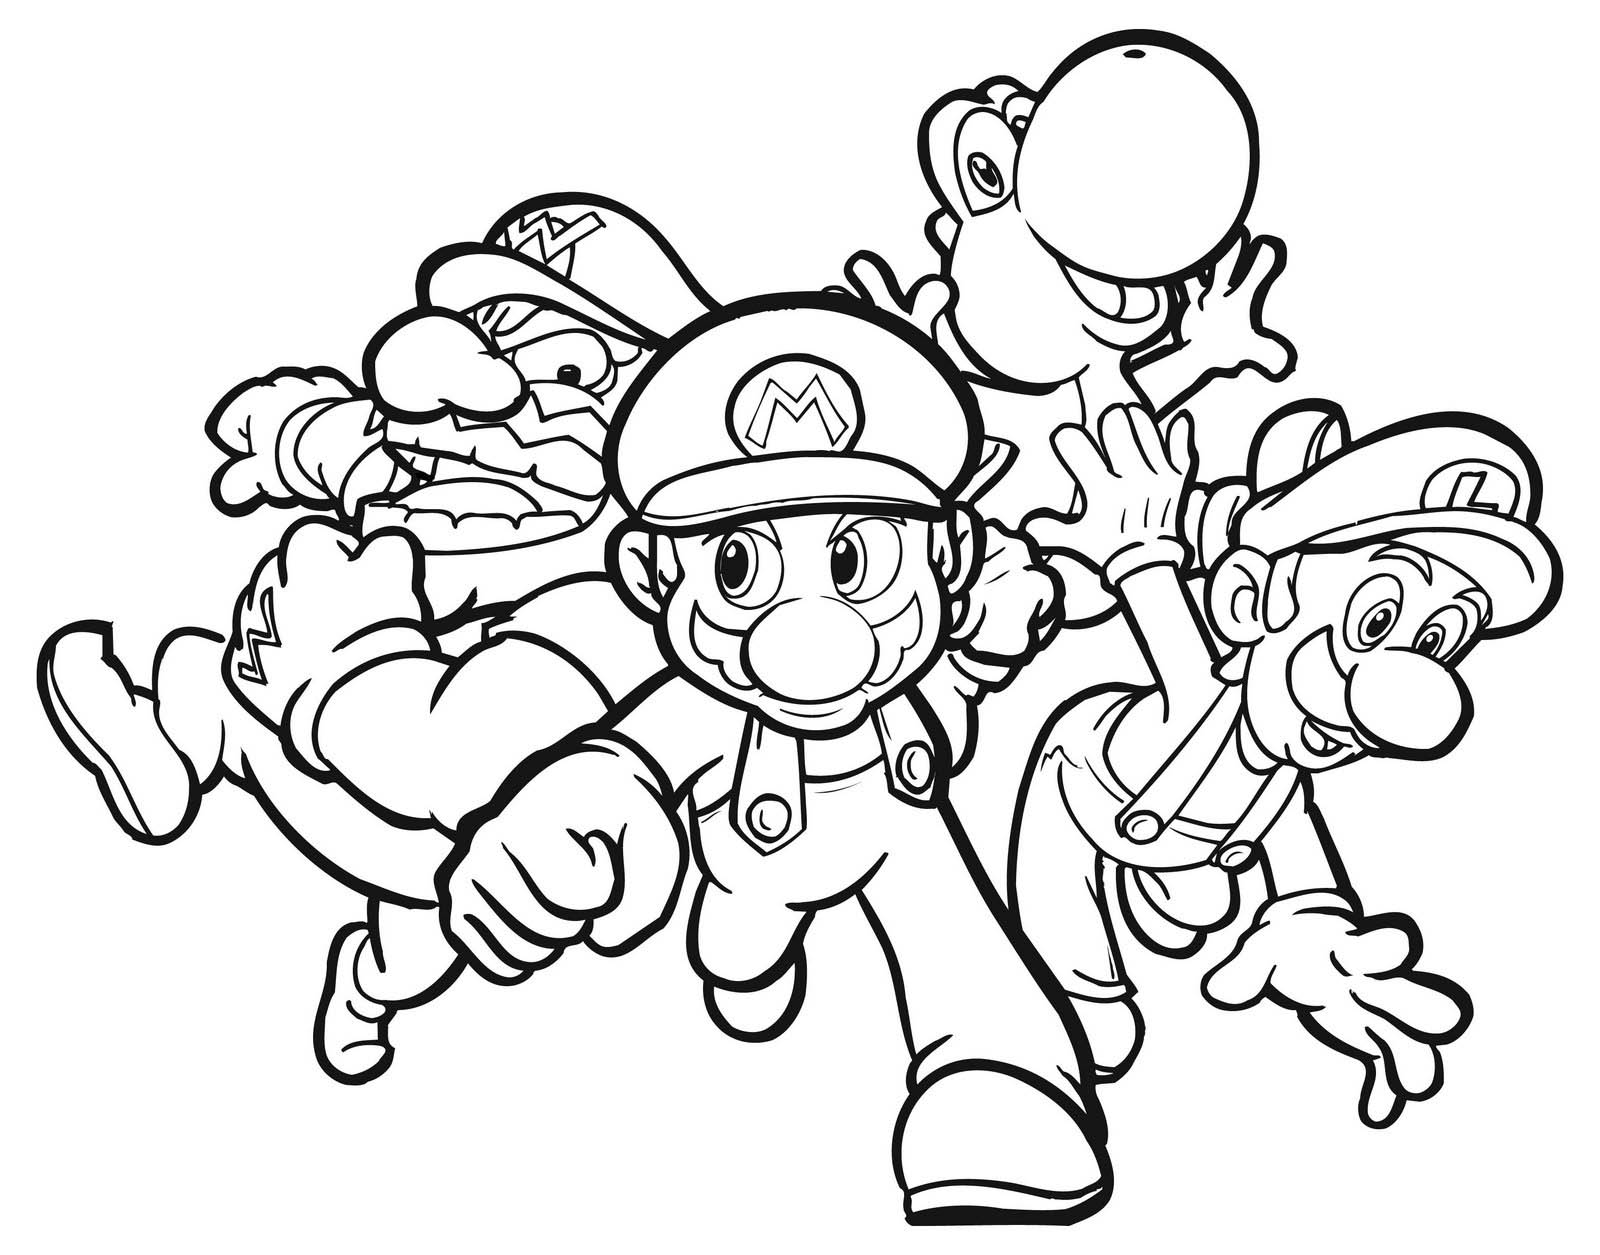 mario coloring coloring pages mario coloring pages free and printable coloring mario